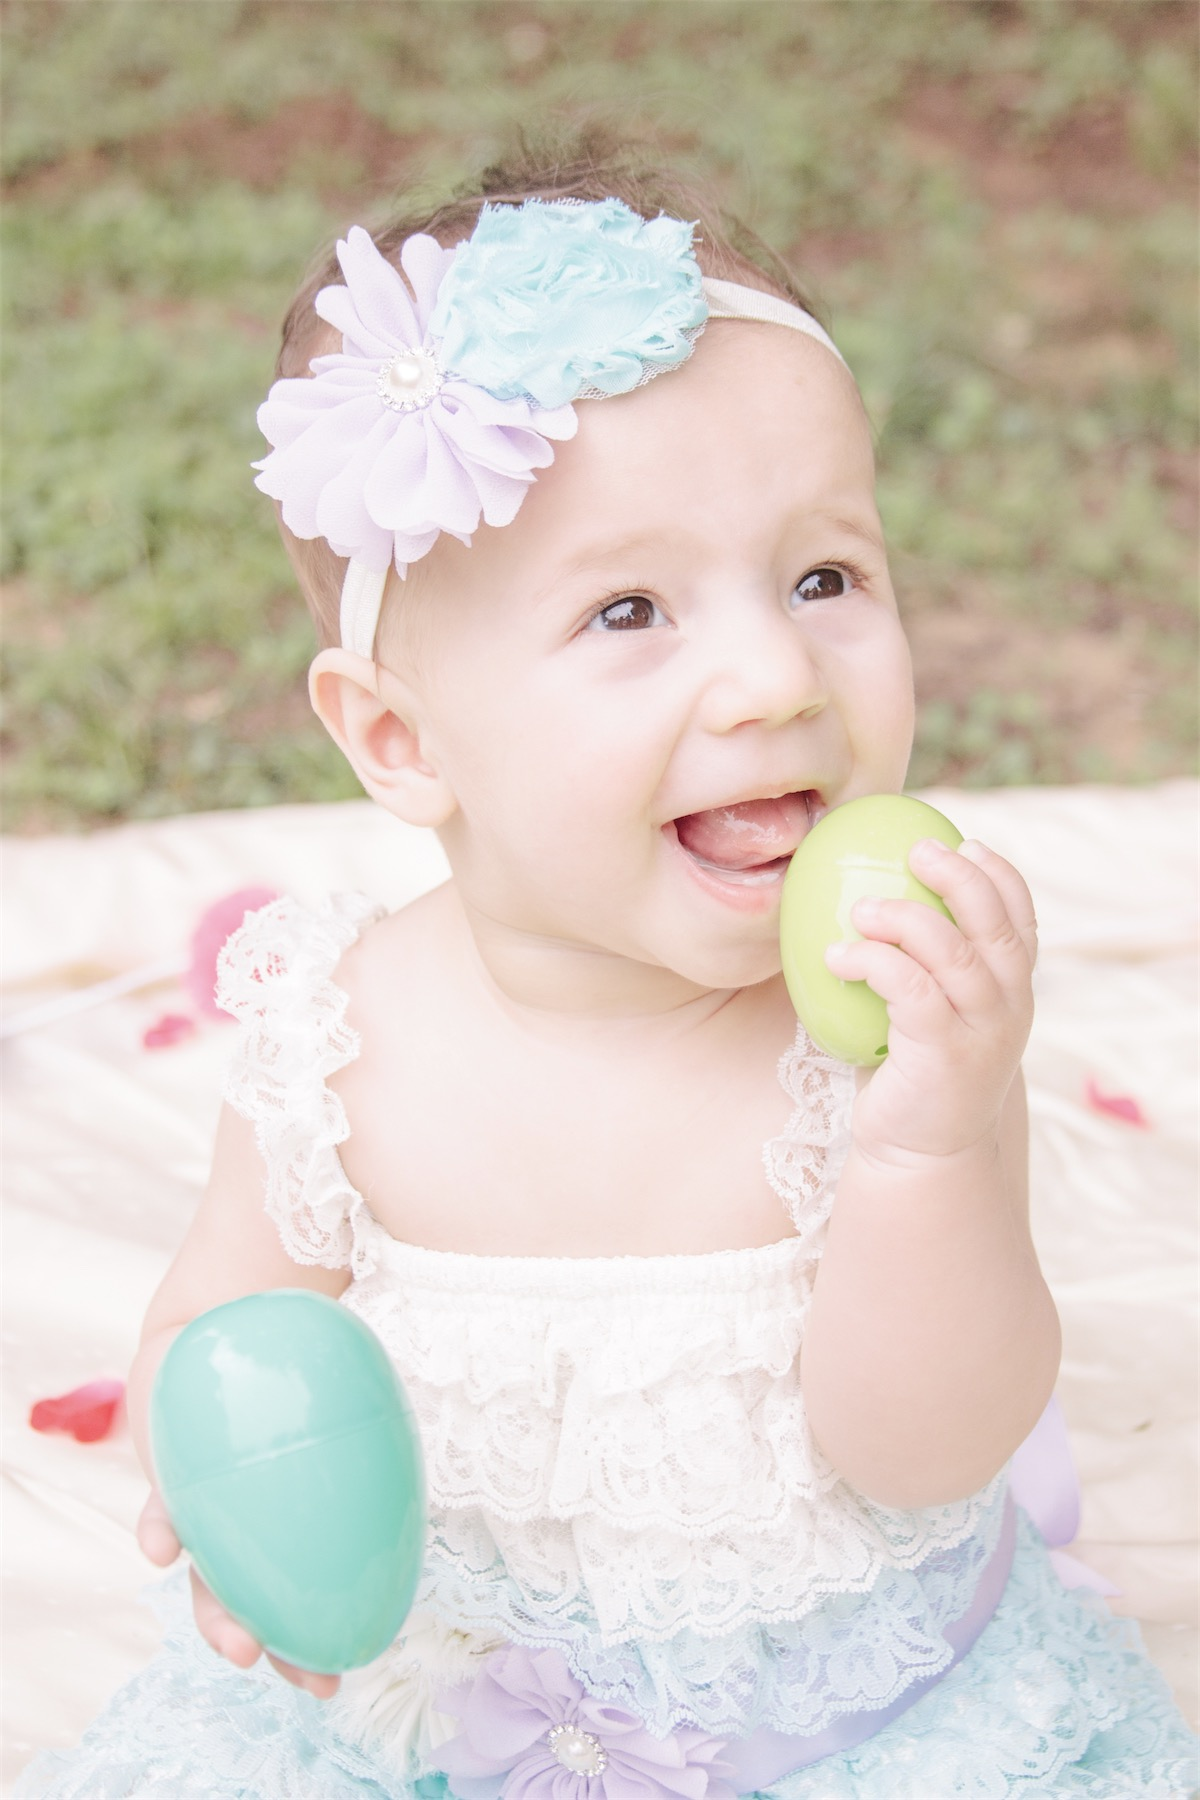 Alayna's 8 Month Photo Session - Easter Theme